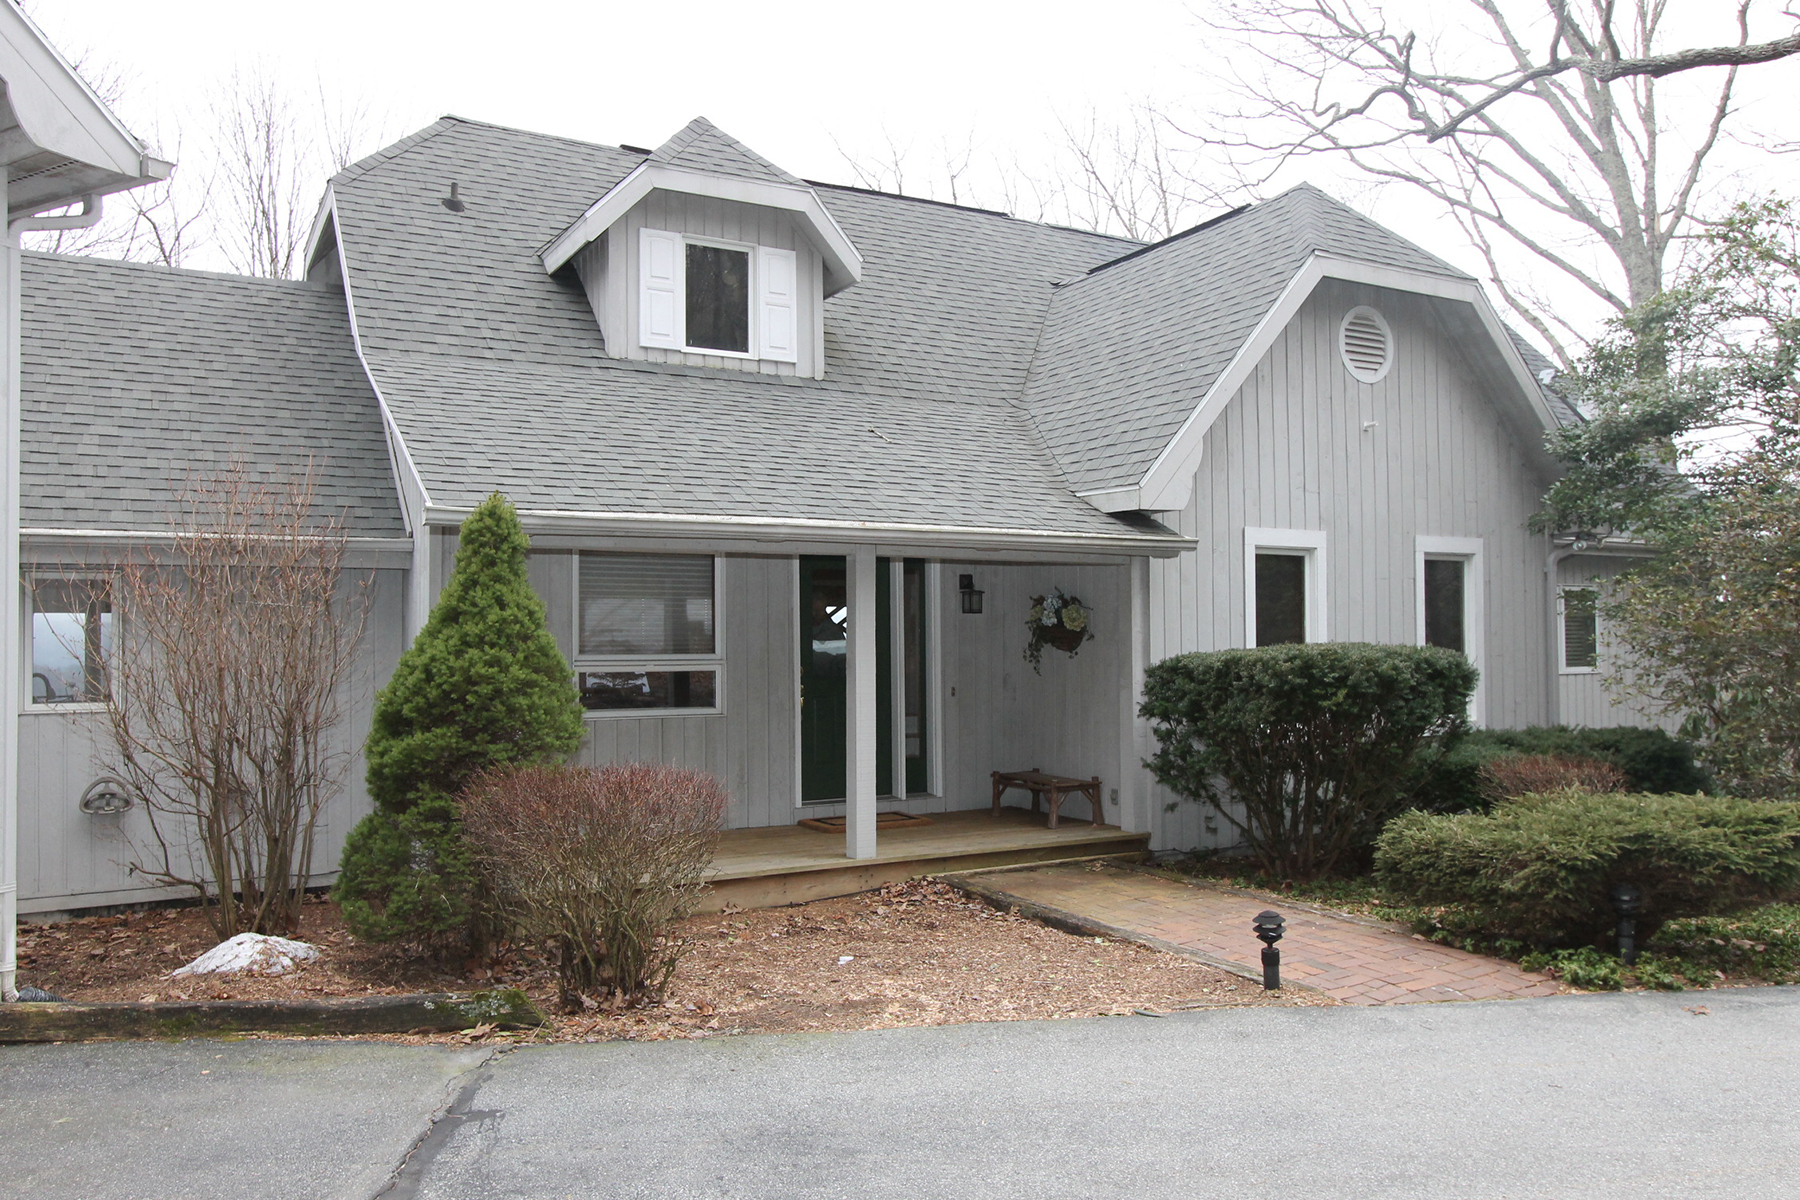 Single Family Home for Sale at BOONE - YONAHLOSSEE 370 Far Sawrey Boone, North Carolina, 28607 United States